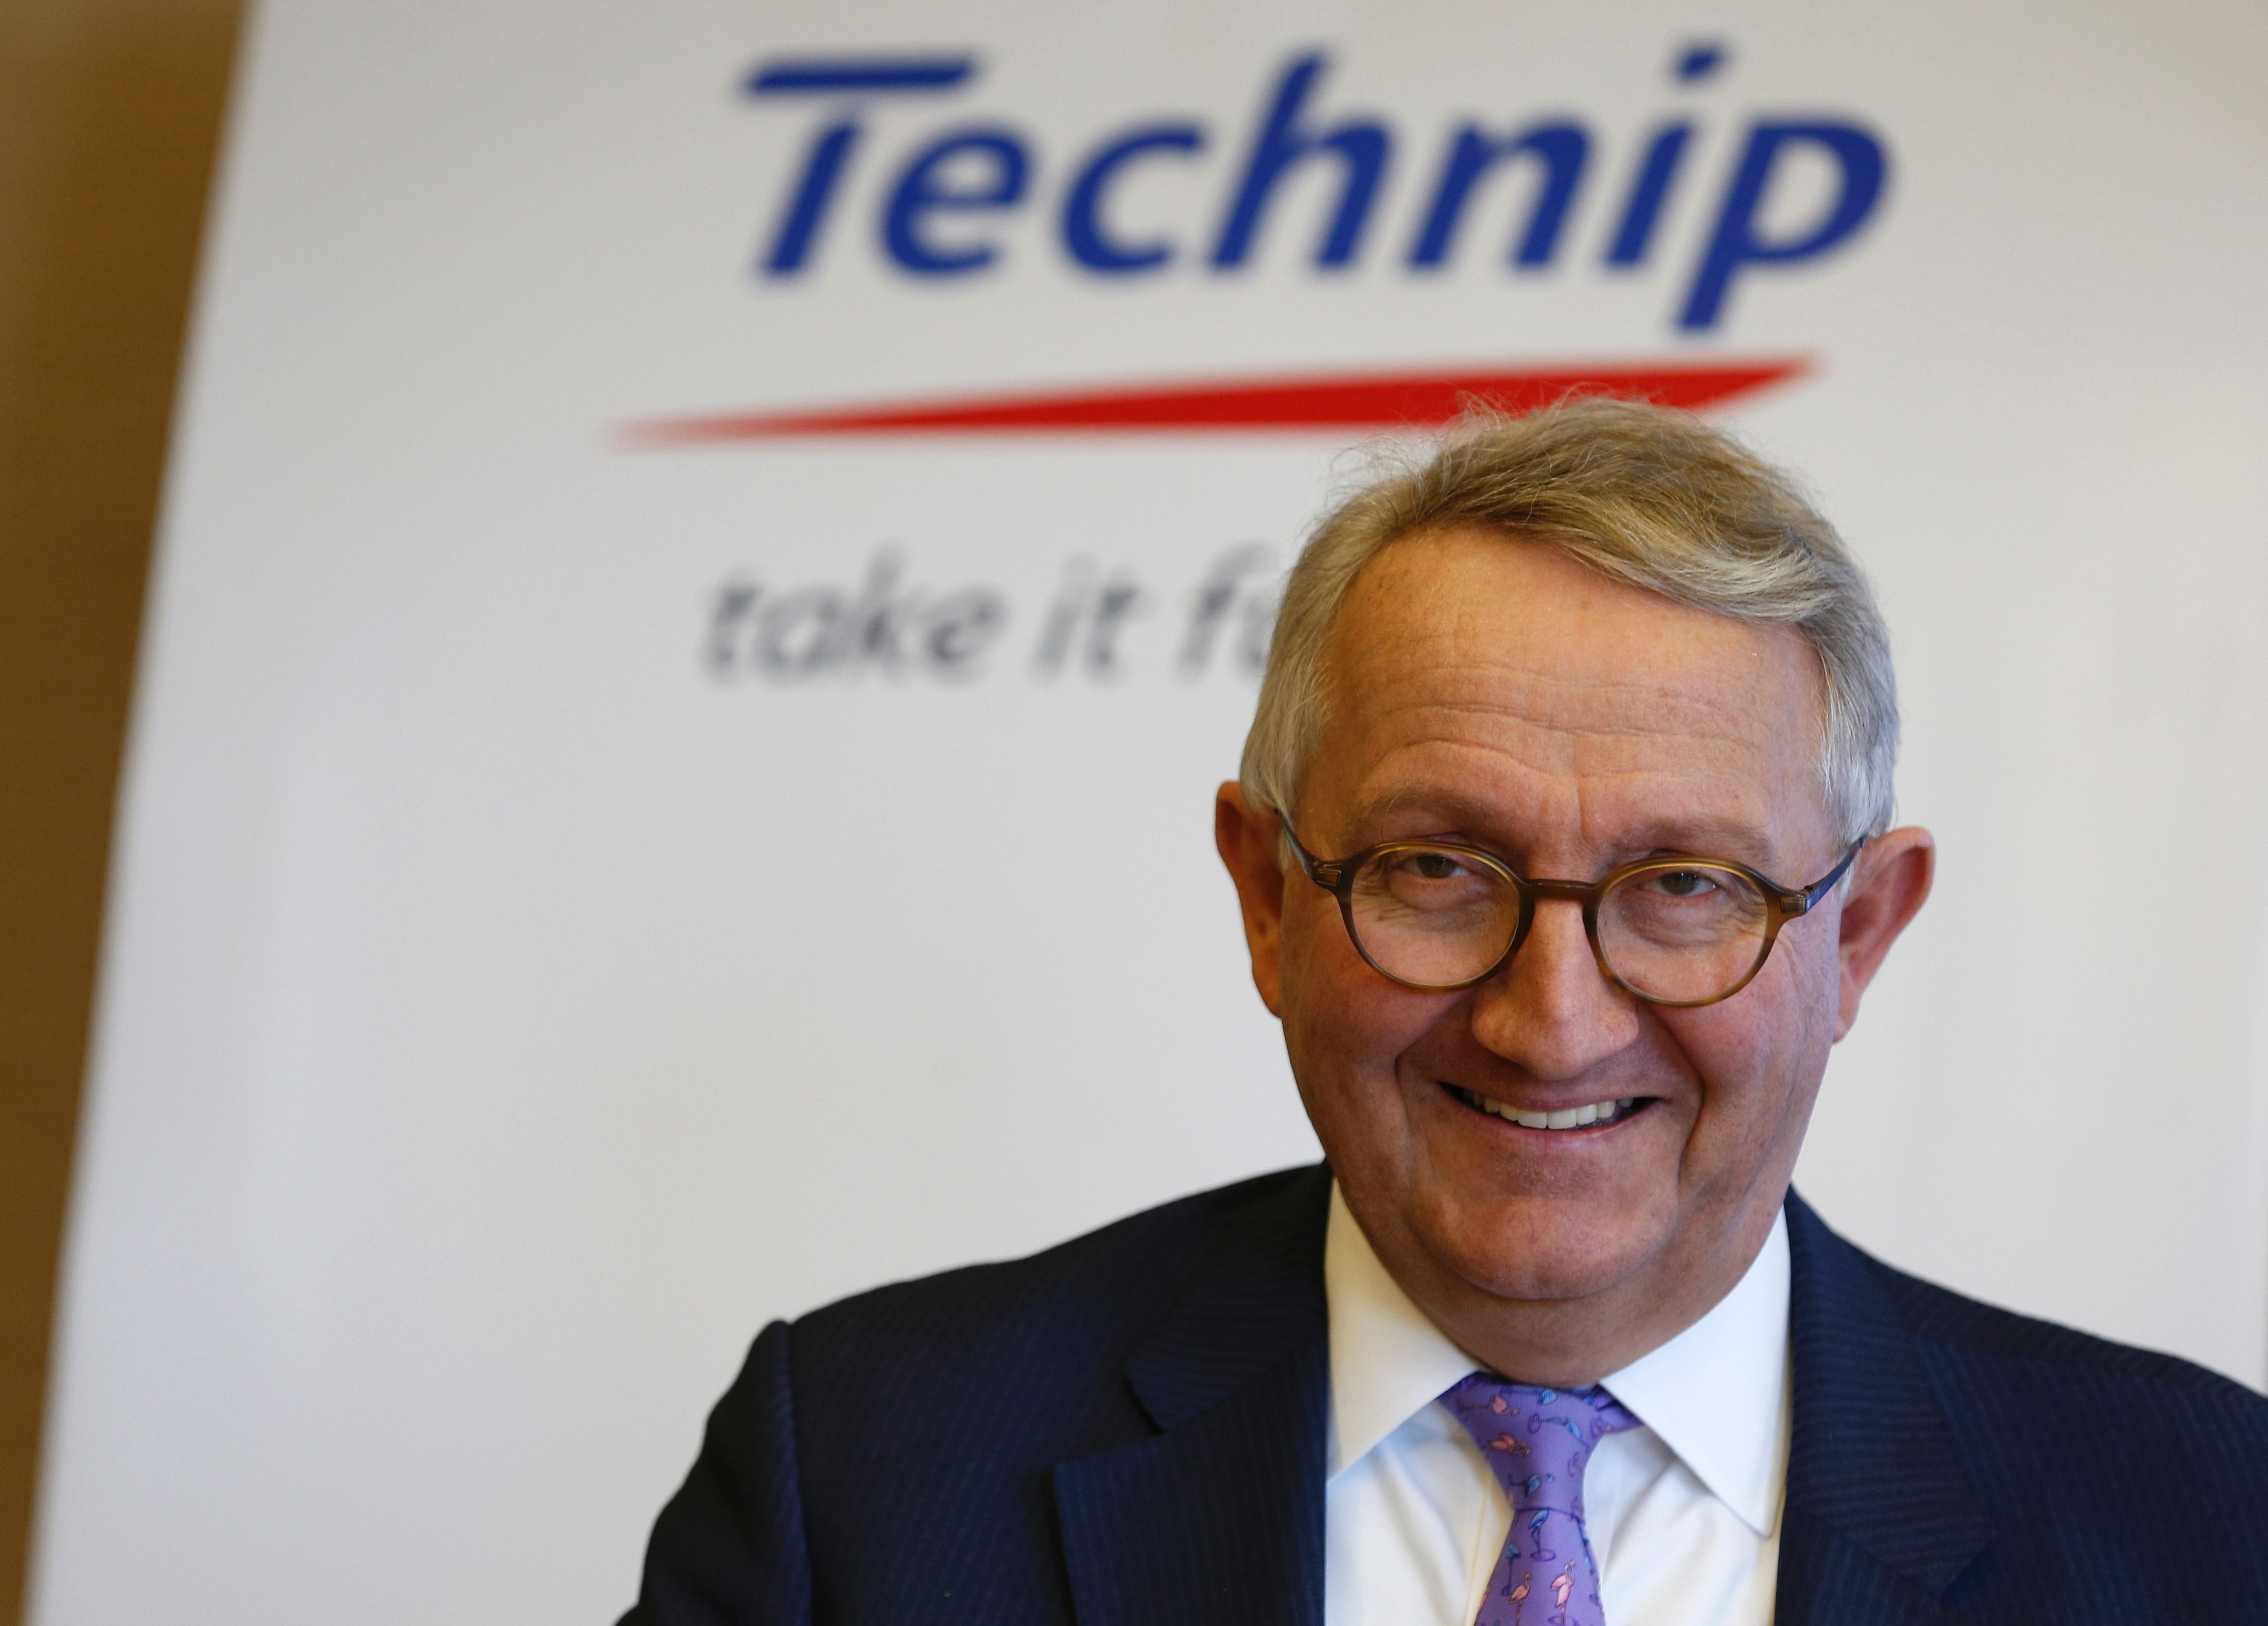 FRANCE-TECHNIP-ECONOMY-RESULTS